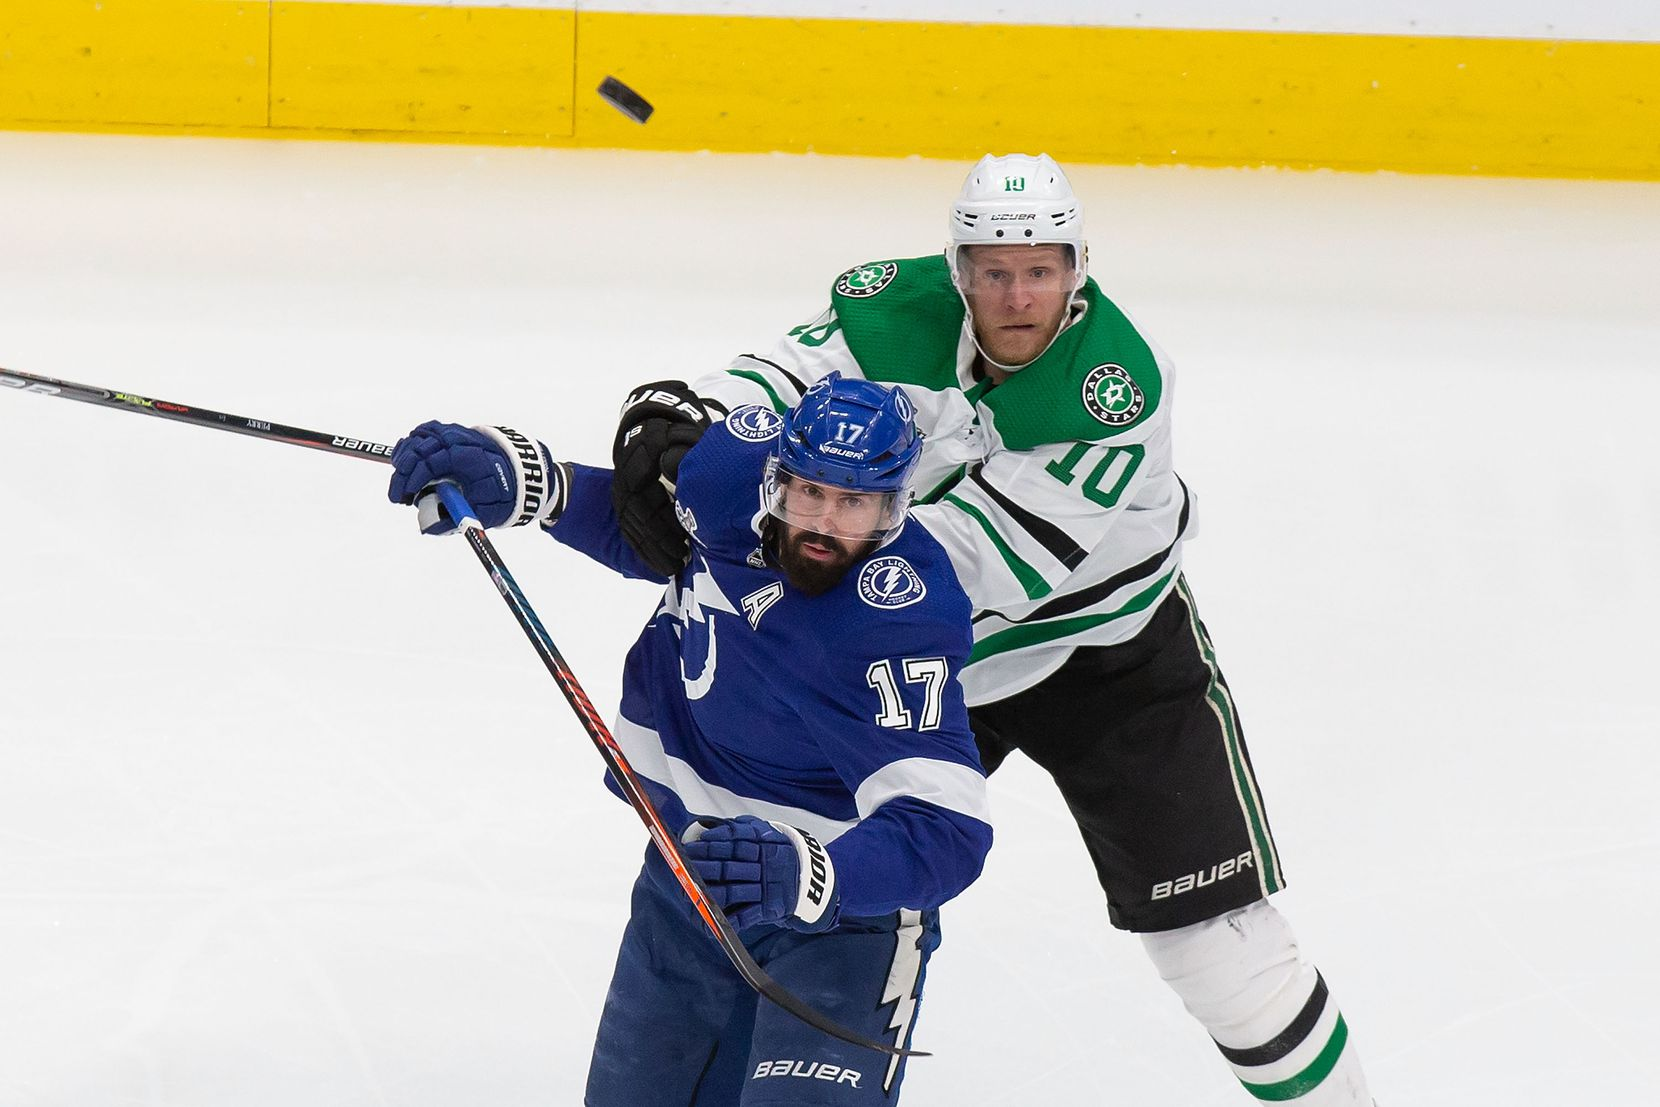 Corey Perry (10) of the Dallas Stars battles against Alex Killorn (17) of the Tampa Bay Lightning during Game Two of the Stanley Cup Final at Rogers Place in Edmonton, Alberta, Canada on Monday, September 21, 2020. (Codie McLachlan/Special Contributor)